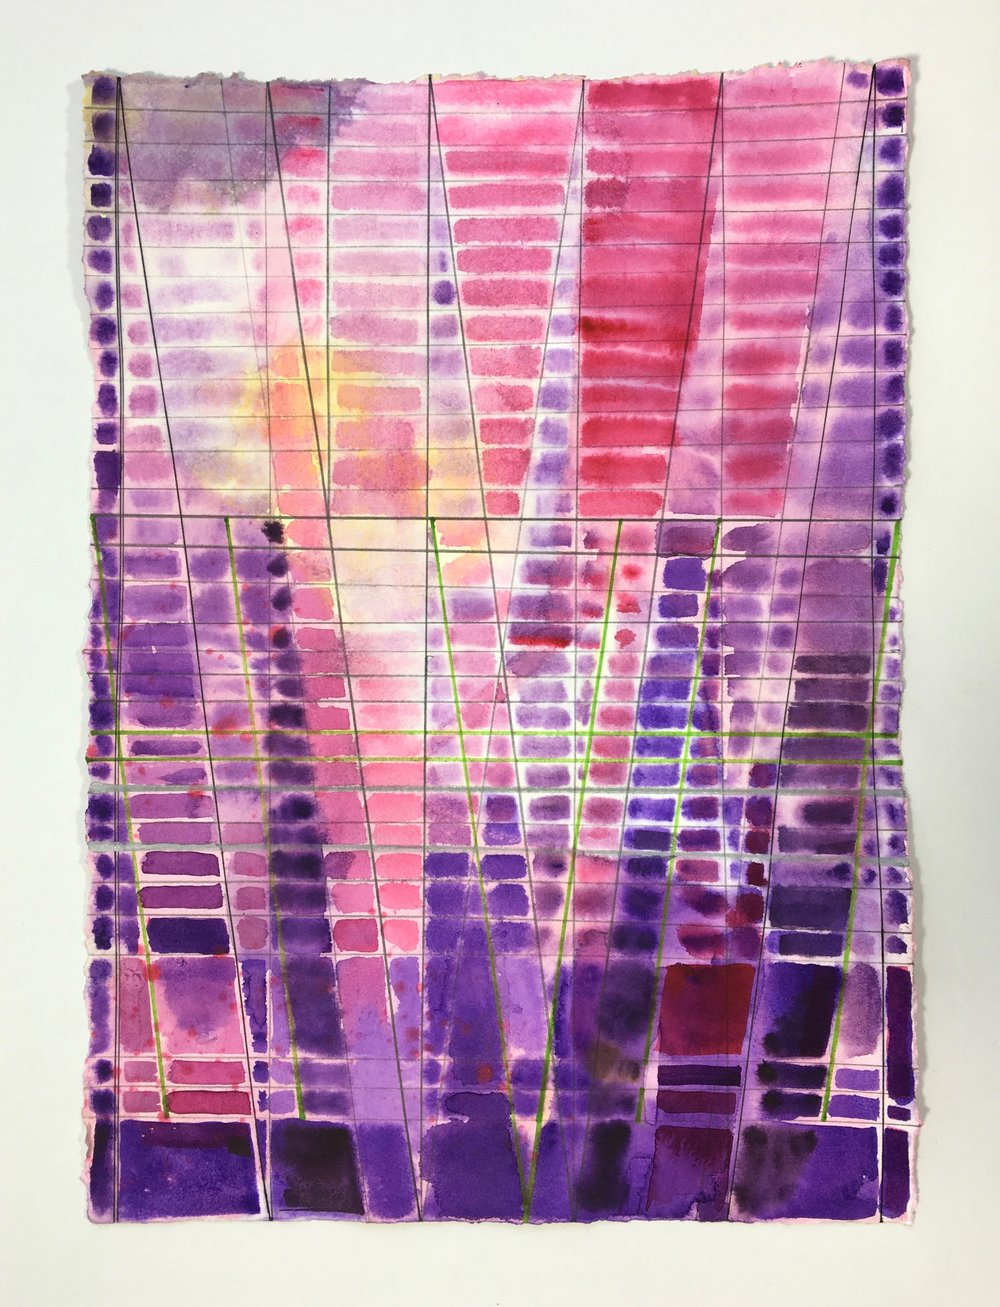 Joe Lloyd, Untitled (Violet), 2017, watercolor on paper, 14 x 11 inches